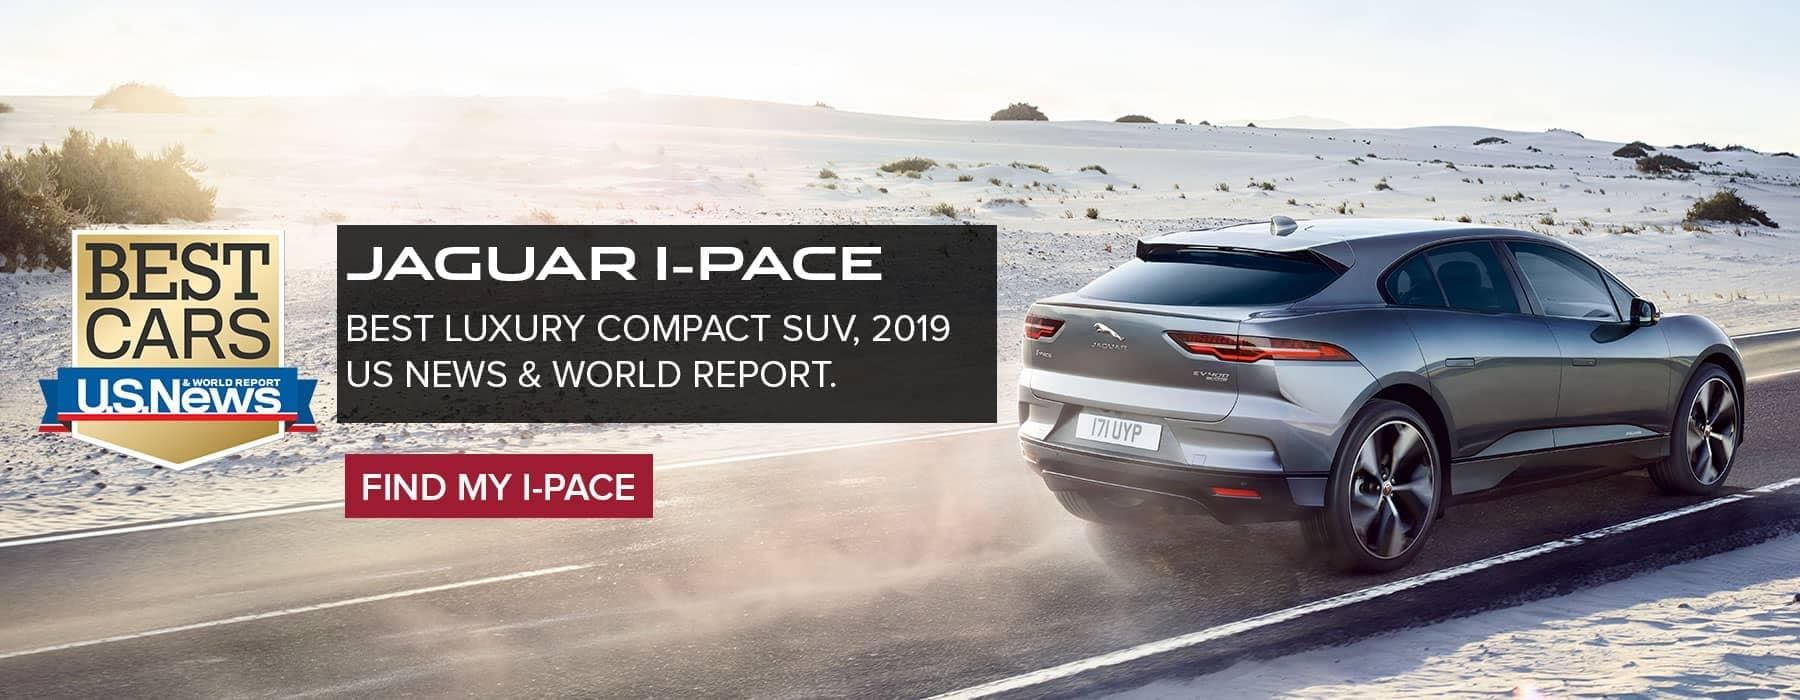 I-PACE-Best-Cars